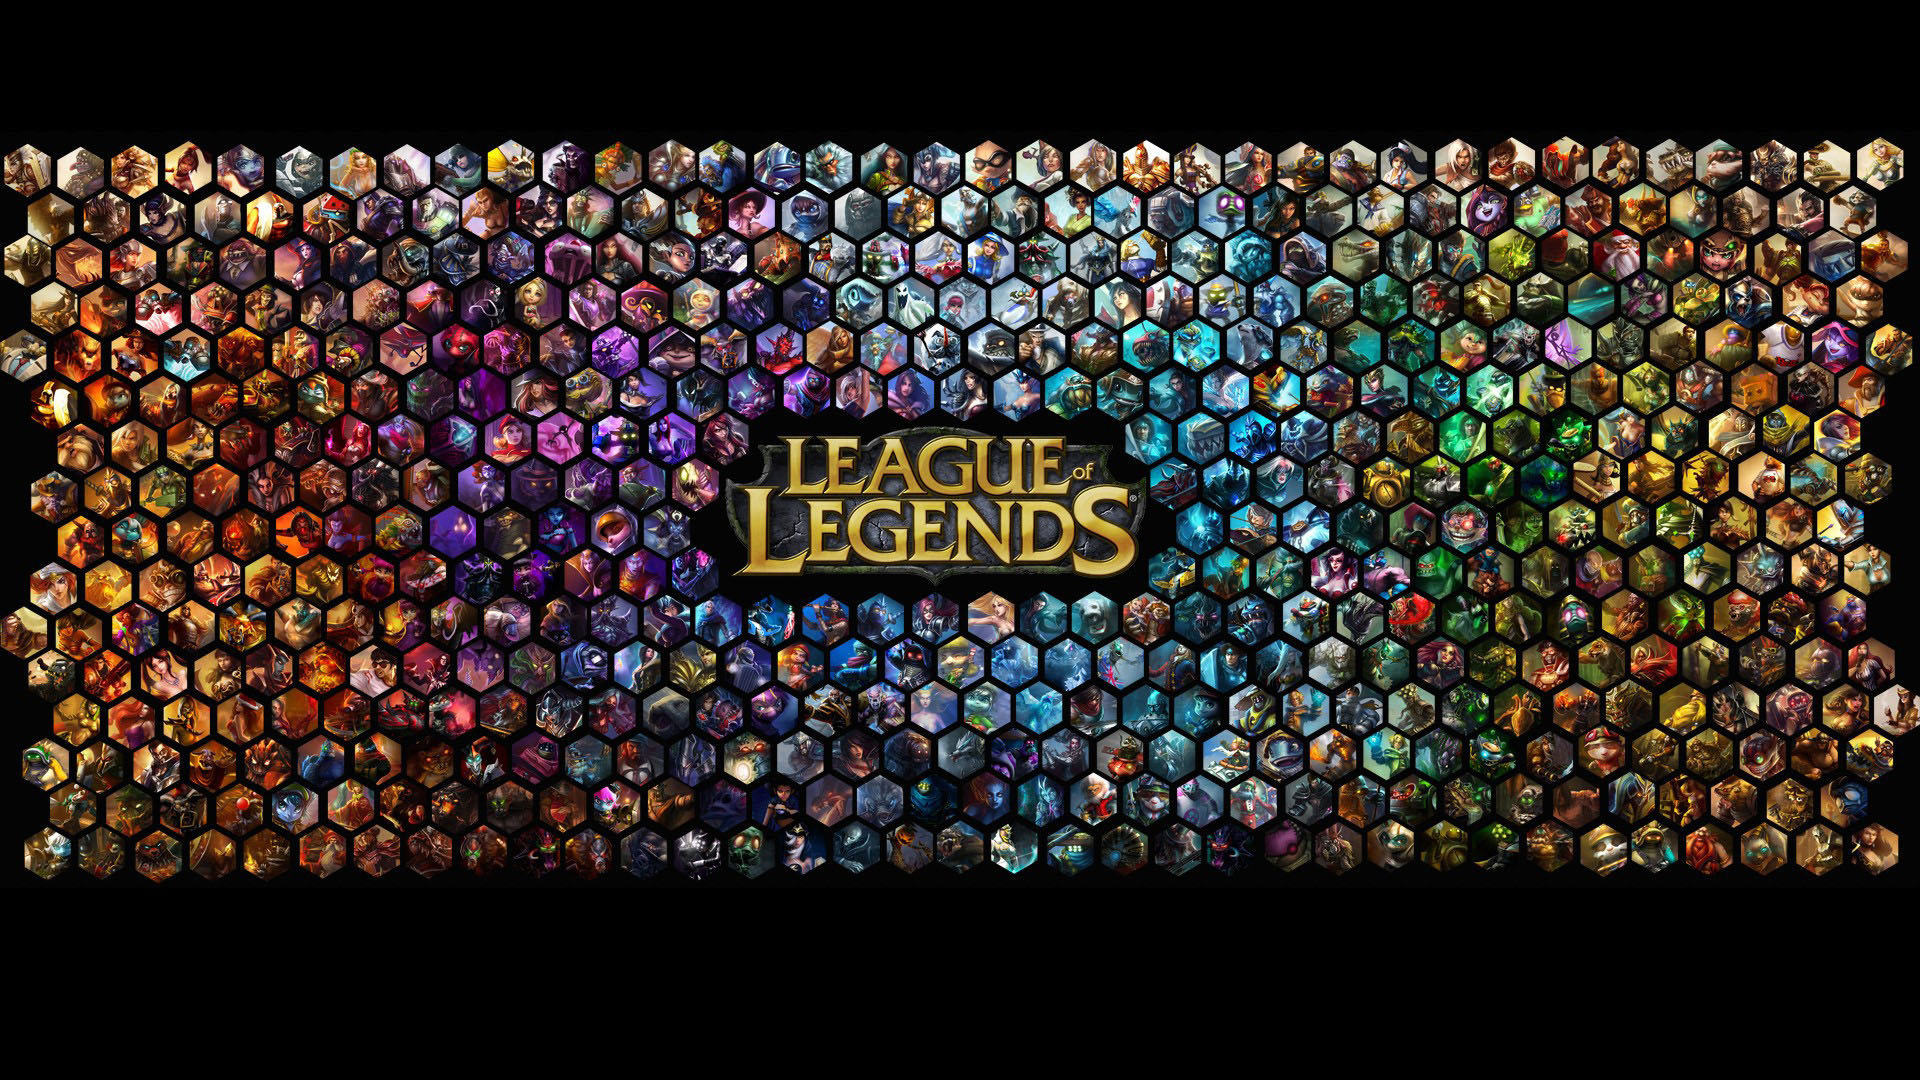 League of Legends Wallpaper OG Wallpaper League Pinterest